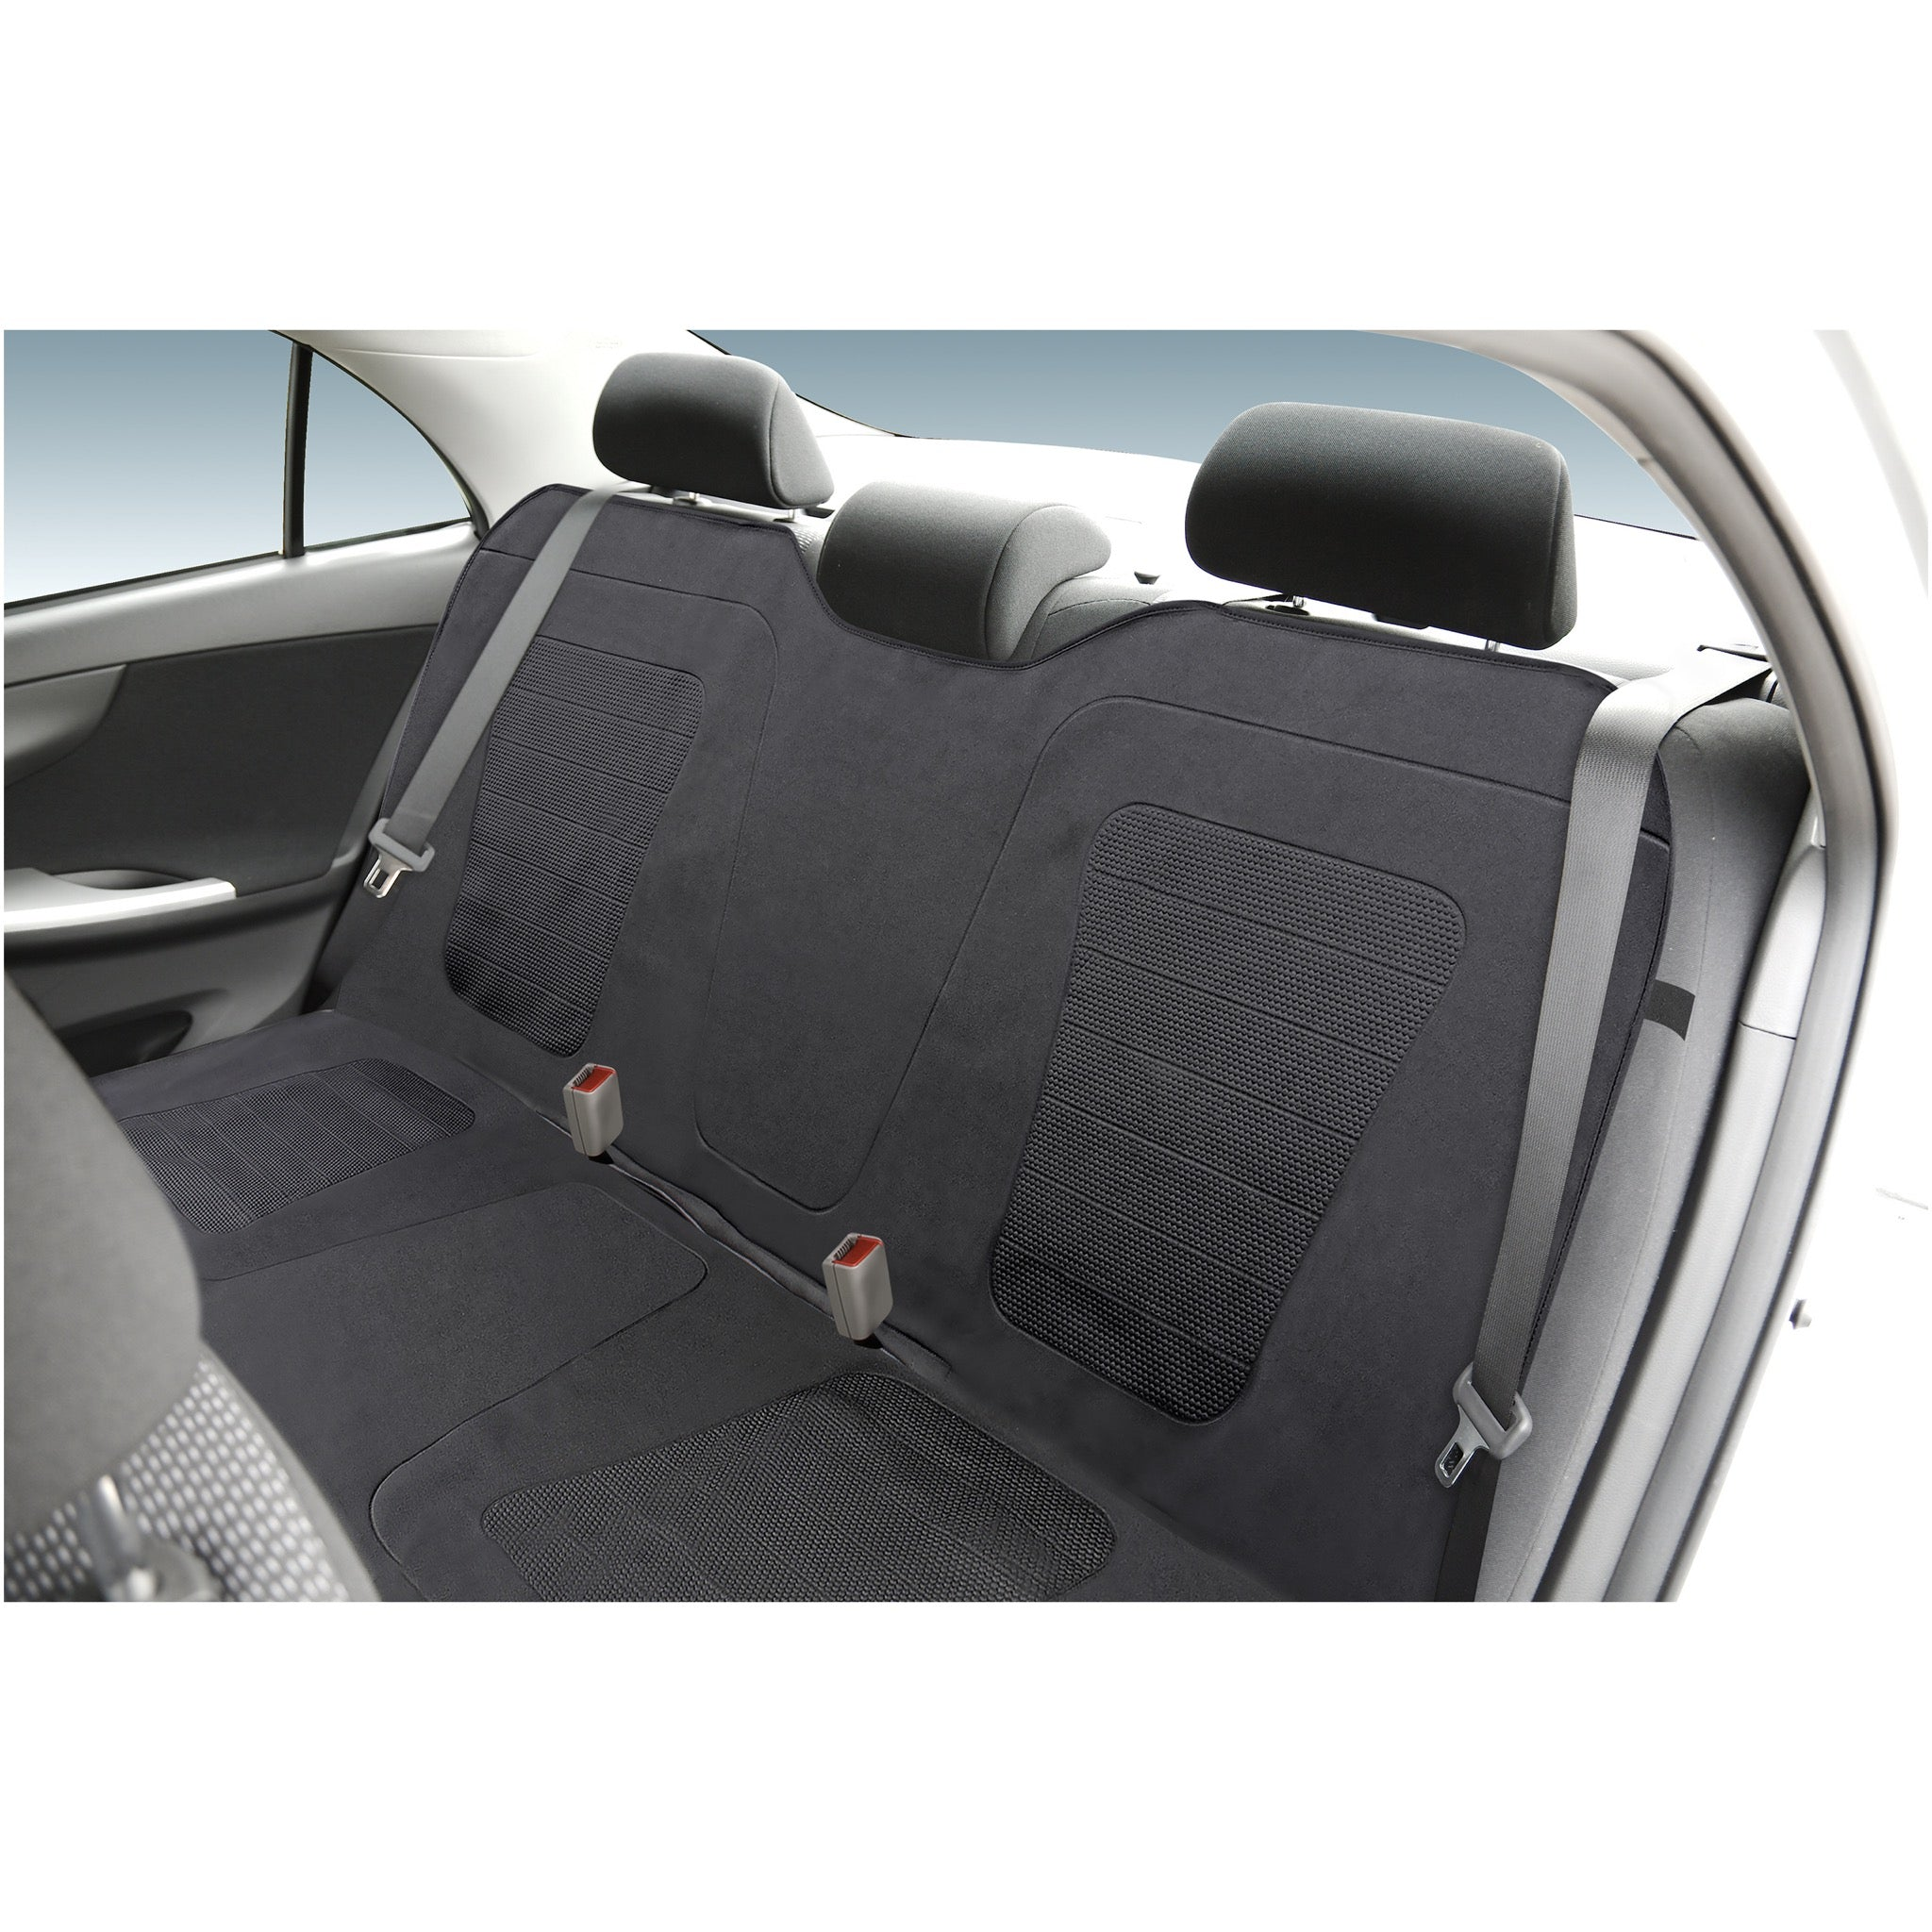 Wetsuit Rear Bench Protector Type S Auto